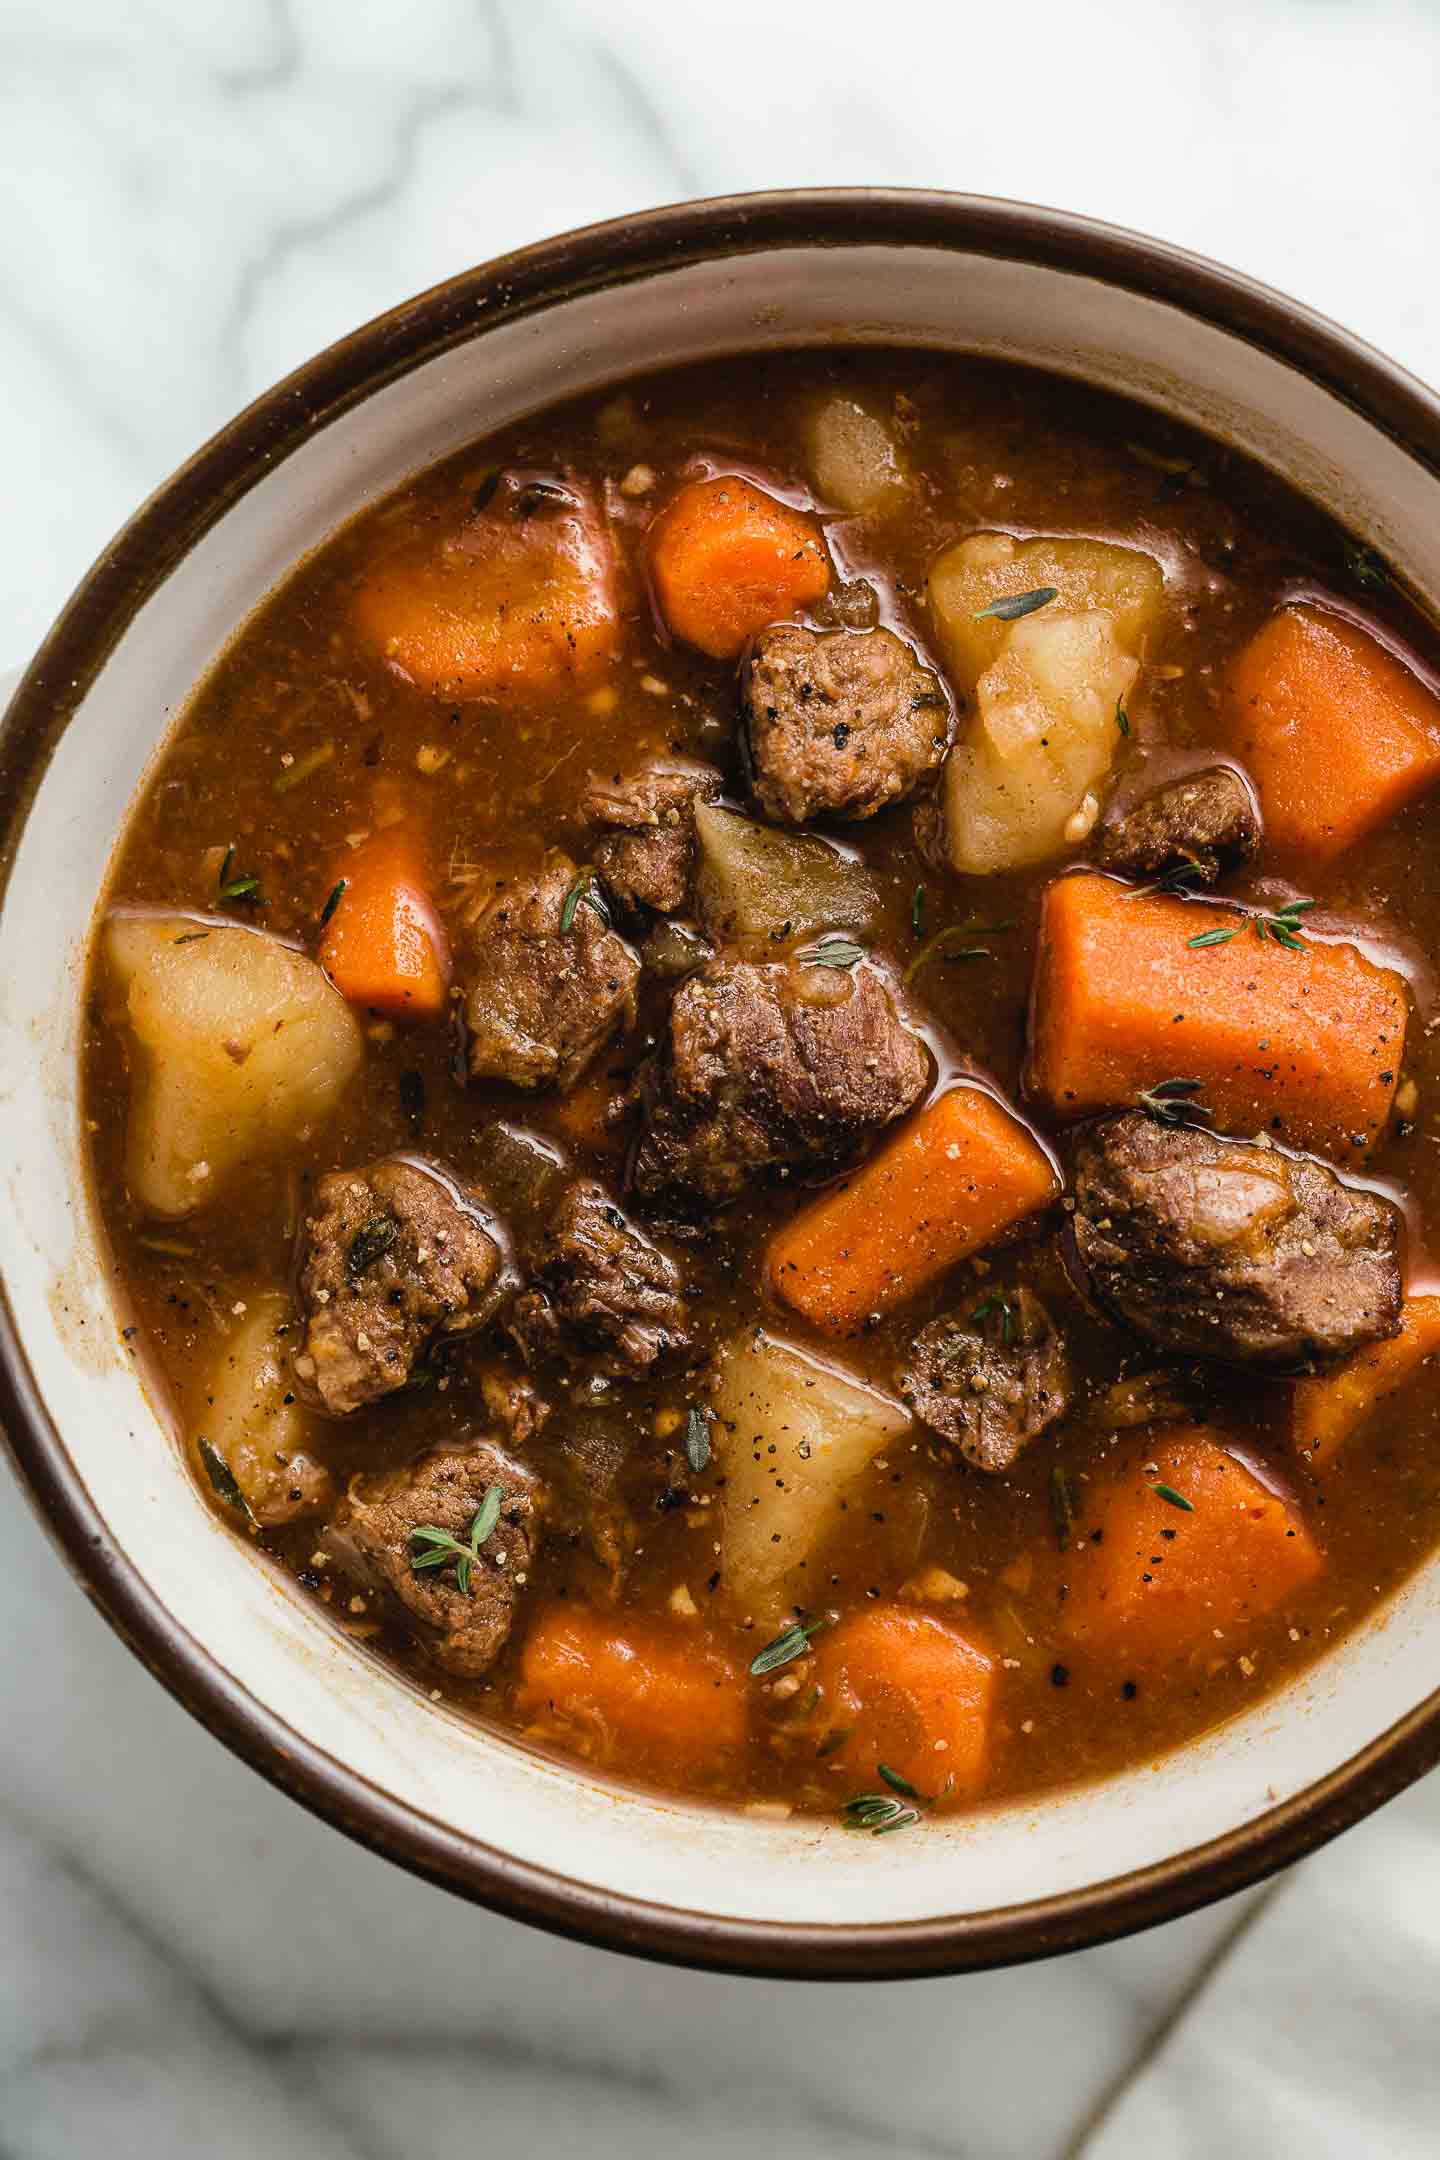 Instant Pot Beef Stew Step By Step Guide Amy In The Kitchen